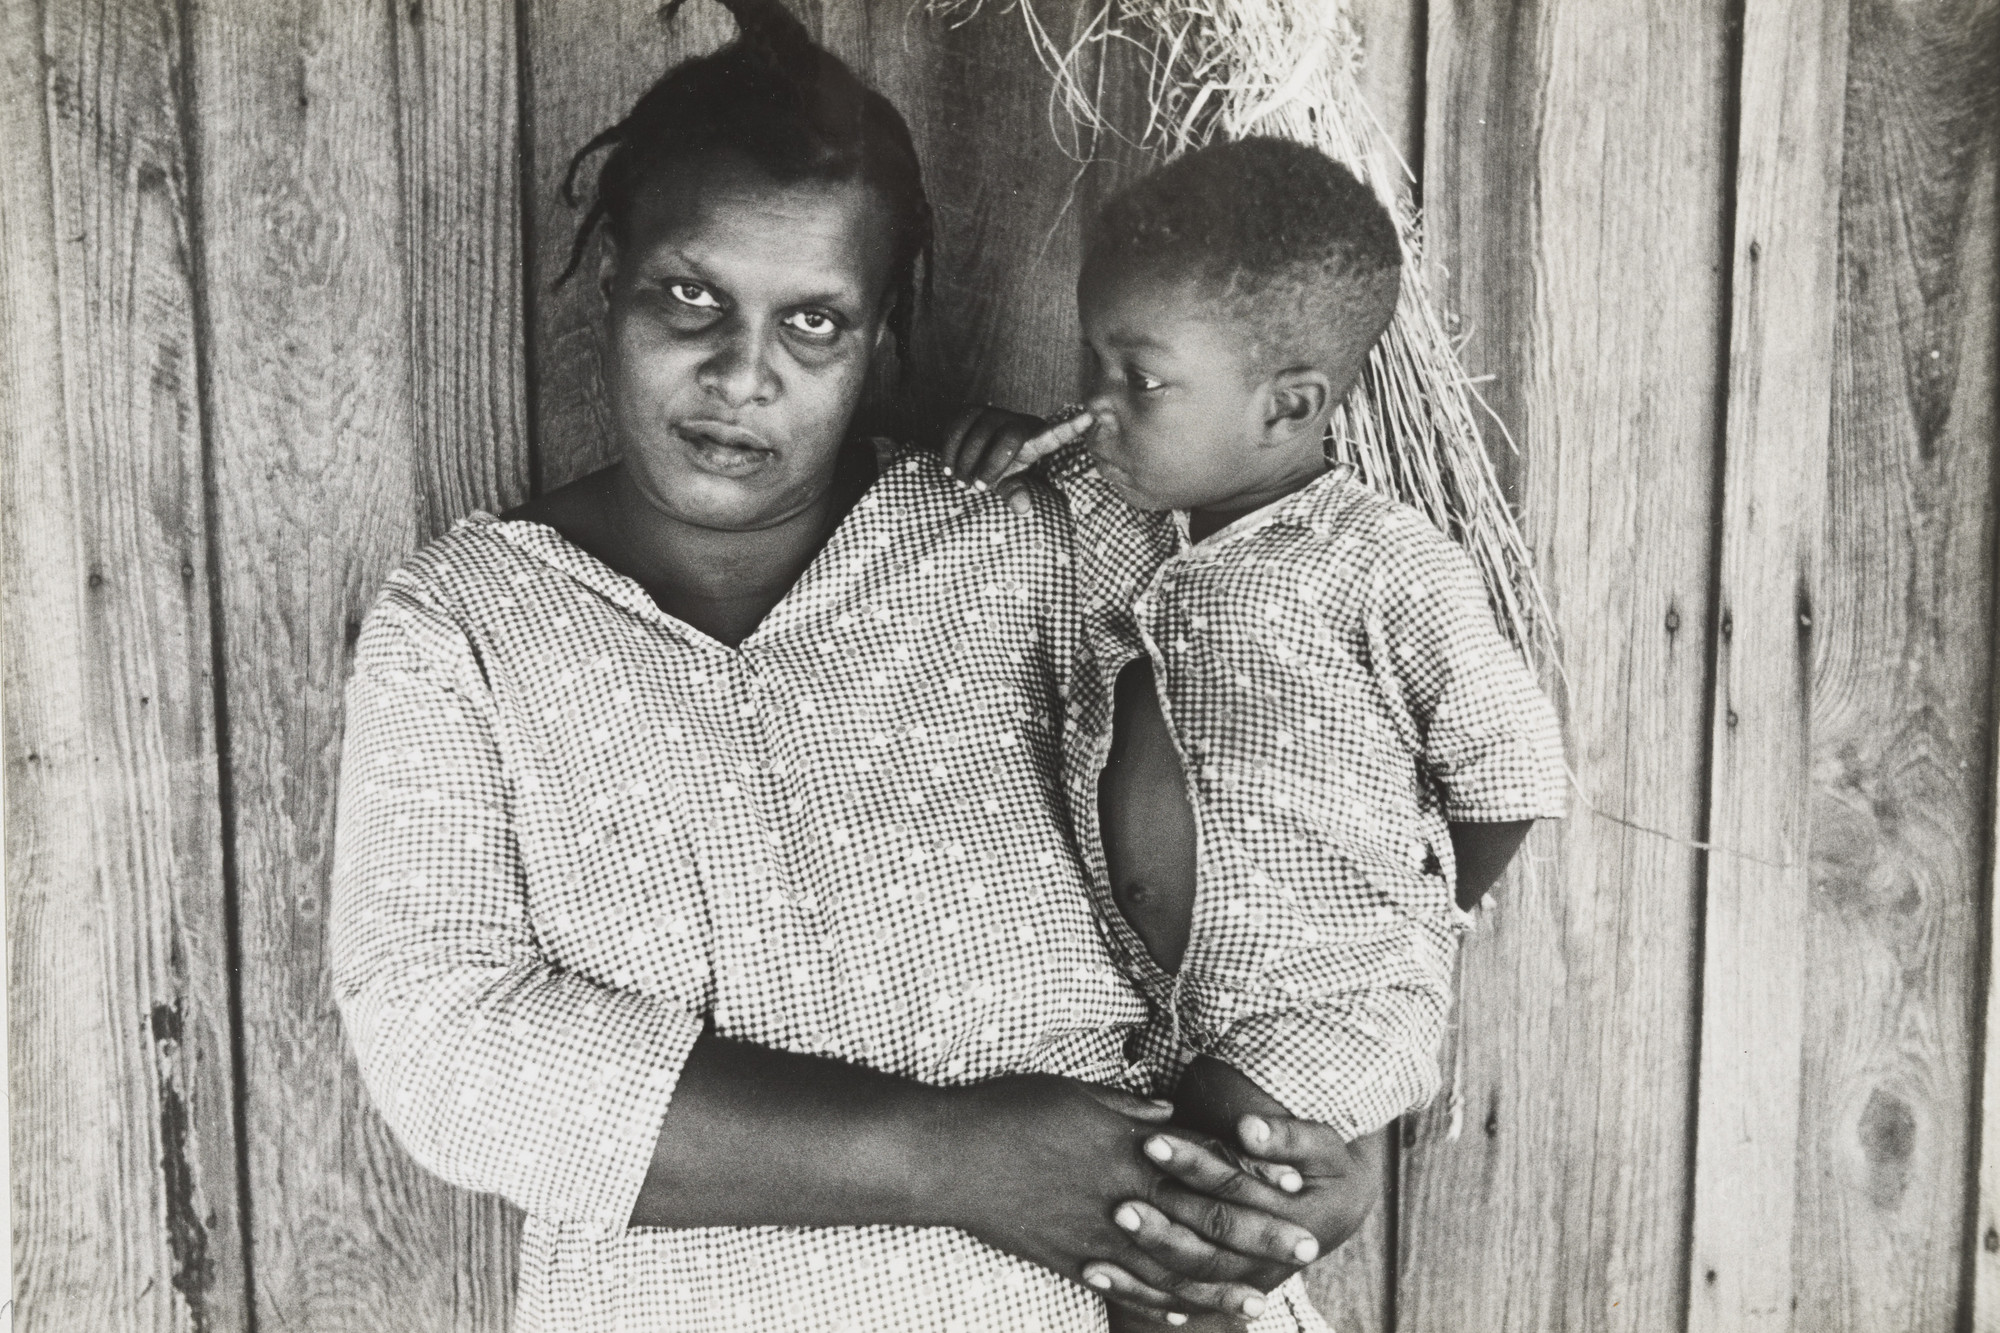 Ben Shahn. Rehabilitation Client, Arkansas, Mother and Child, Arkansas. October 1935